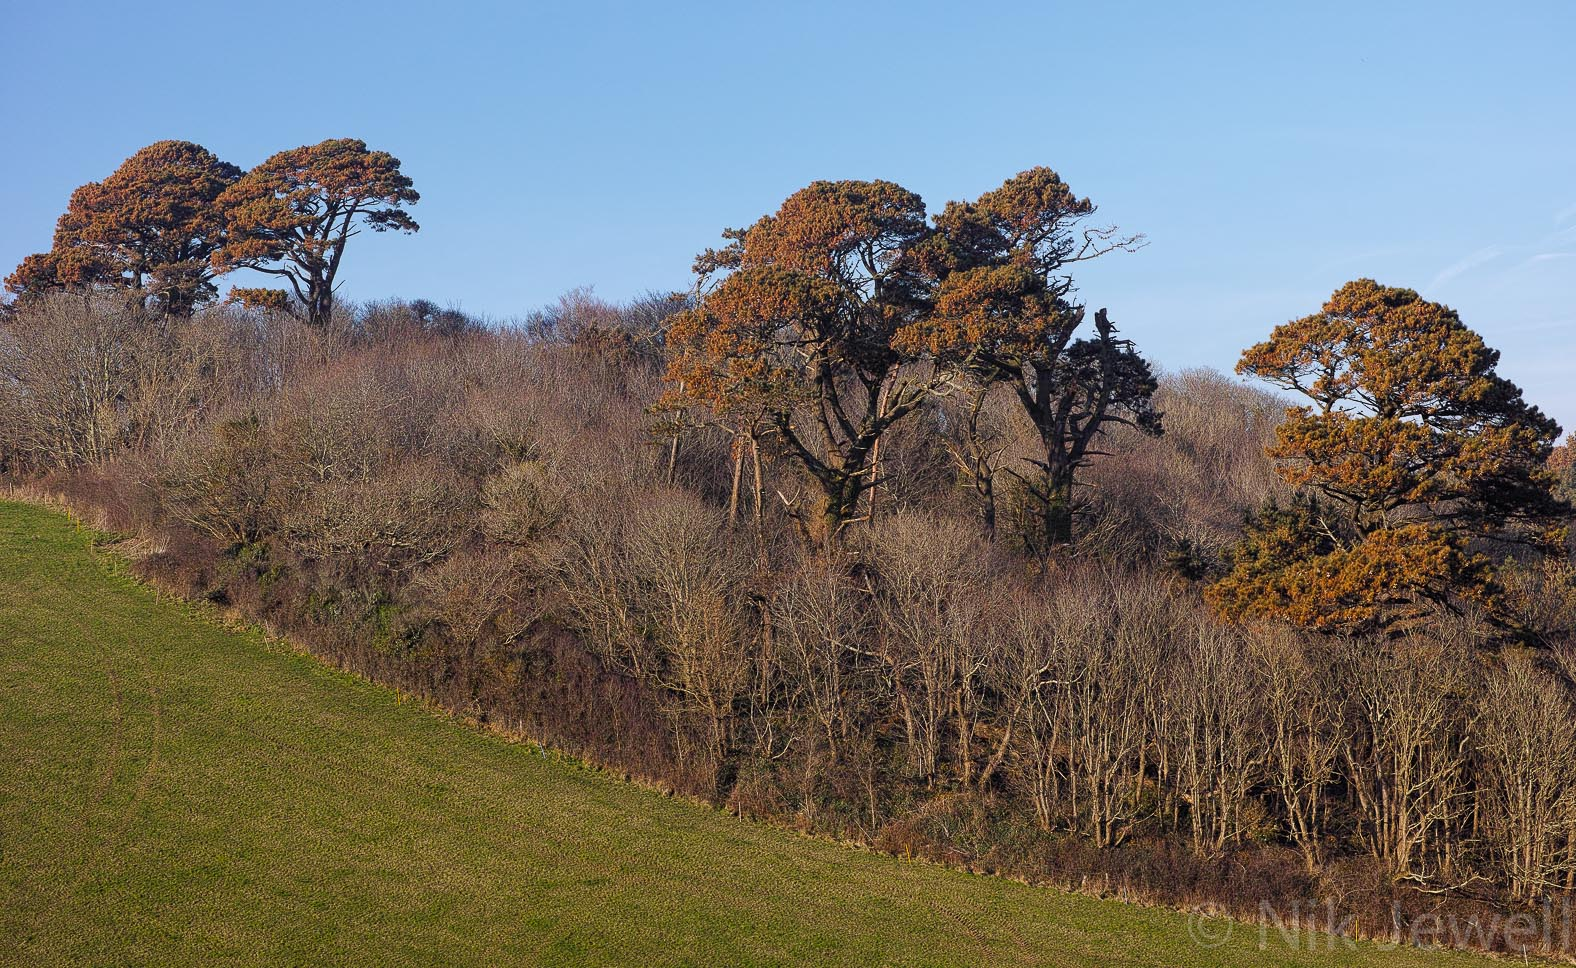 Salt burnt pine trees in Mothecombe Grove in the South Hams of Devon